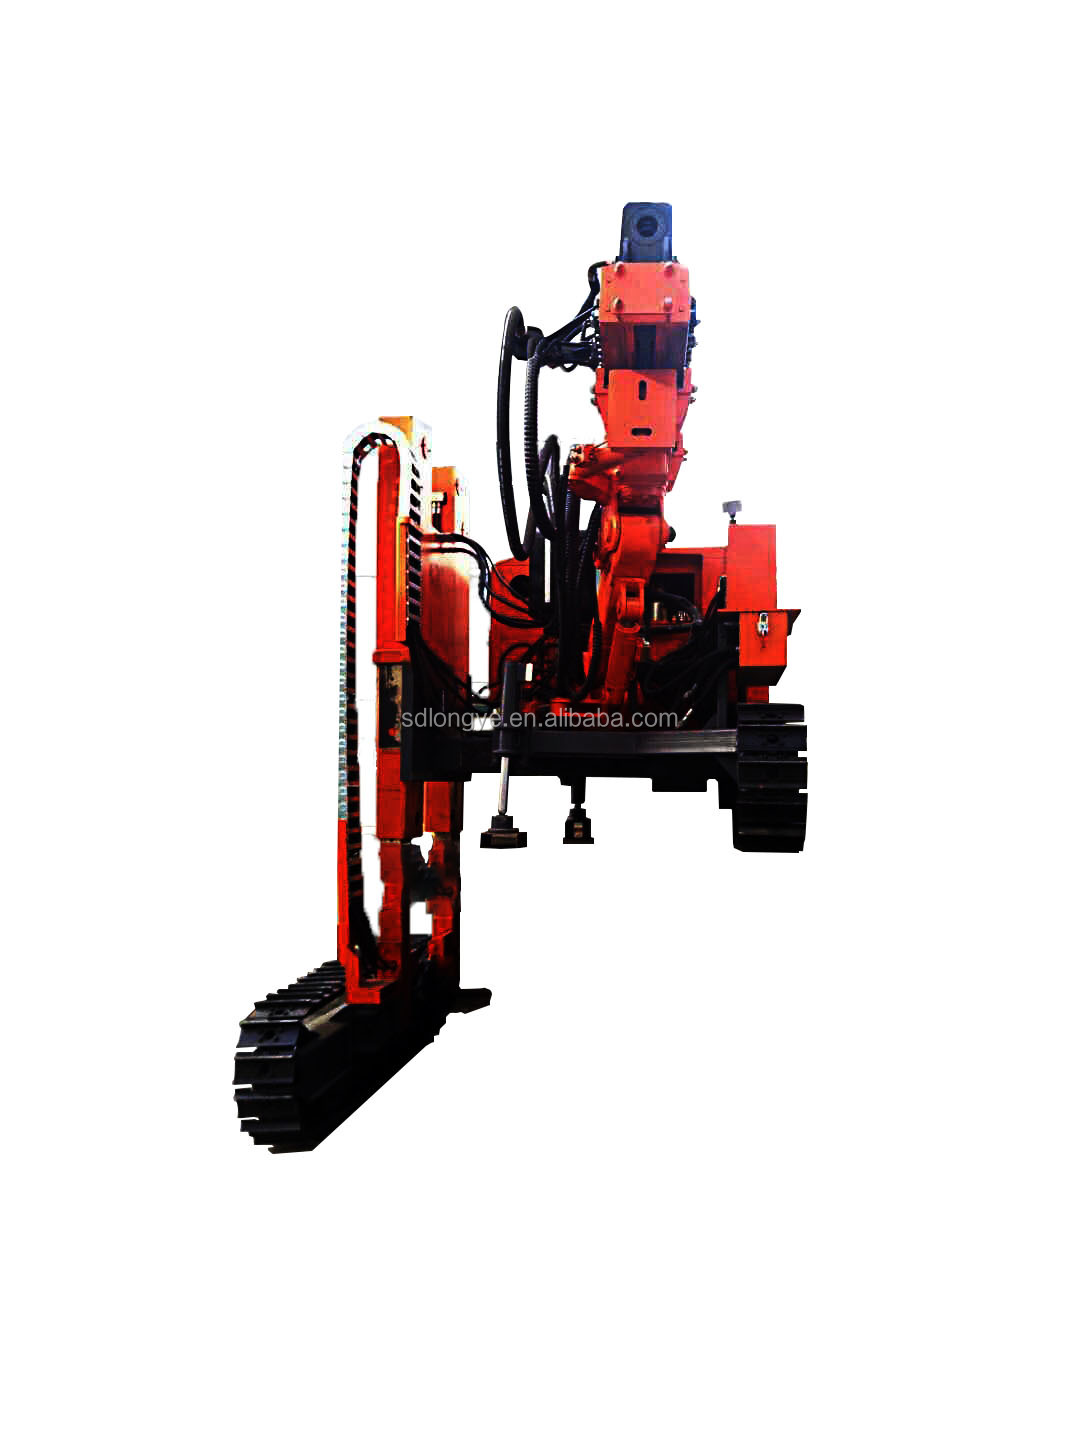 Hot Sell Hydraulic Static Pile Driver/ Diesel Hammer/ Used Hydraulic Hammer MZ398Y for Mountainous solar